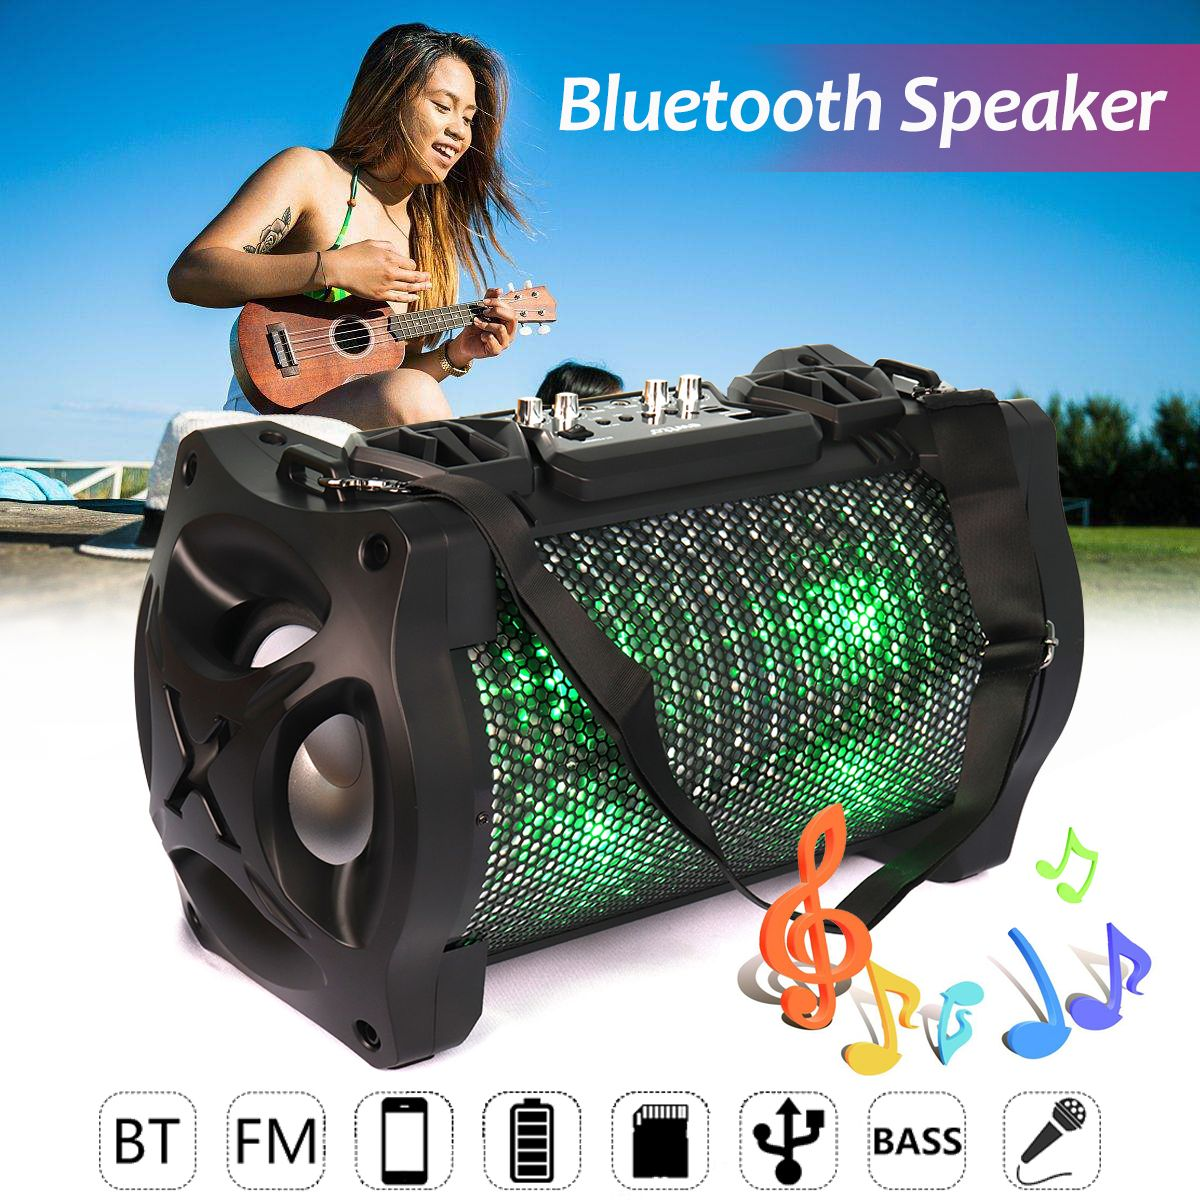 Outdoor Tragbare Subwoofer Bluetooth Lautsprecher Karabale mit Mikrofon Super Bass Stereo FM Radio AUX/USB/TF Karte Musik player